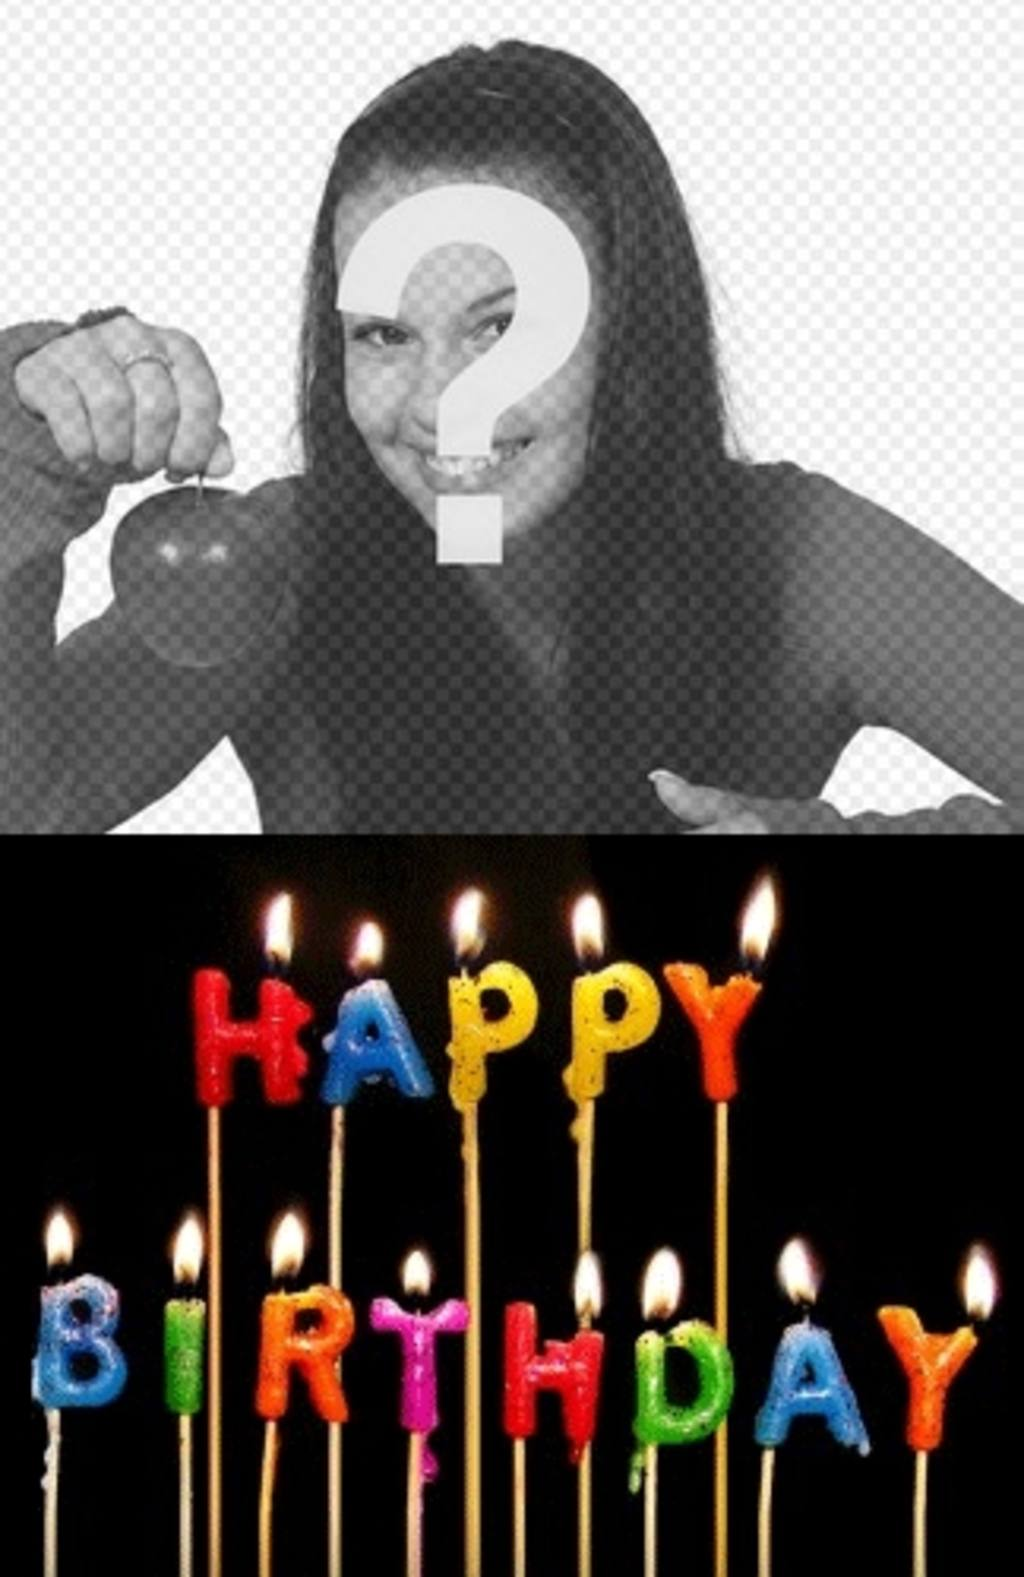 Template to create a personalized birthday card with your photo, you can upload to add these candles burning with the text colors Happy Birthday. Your photo will appear in the background